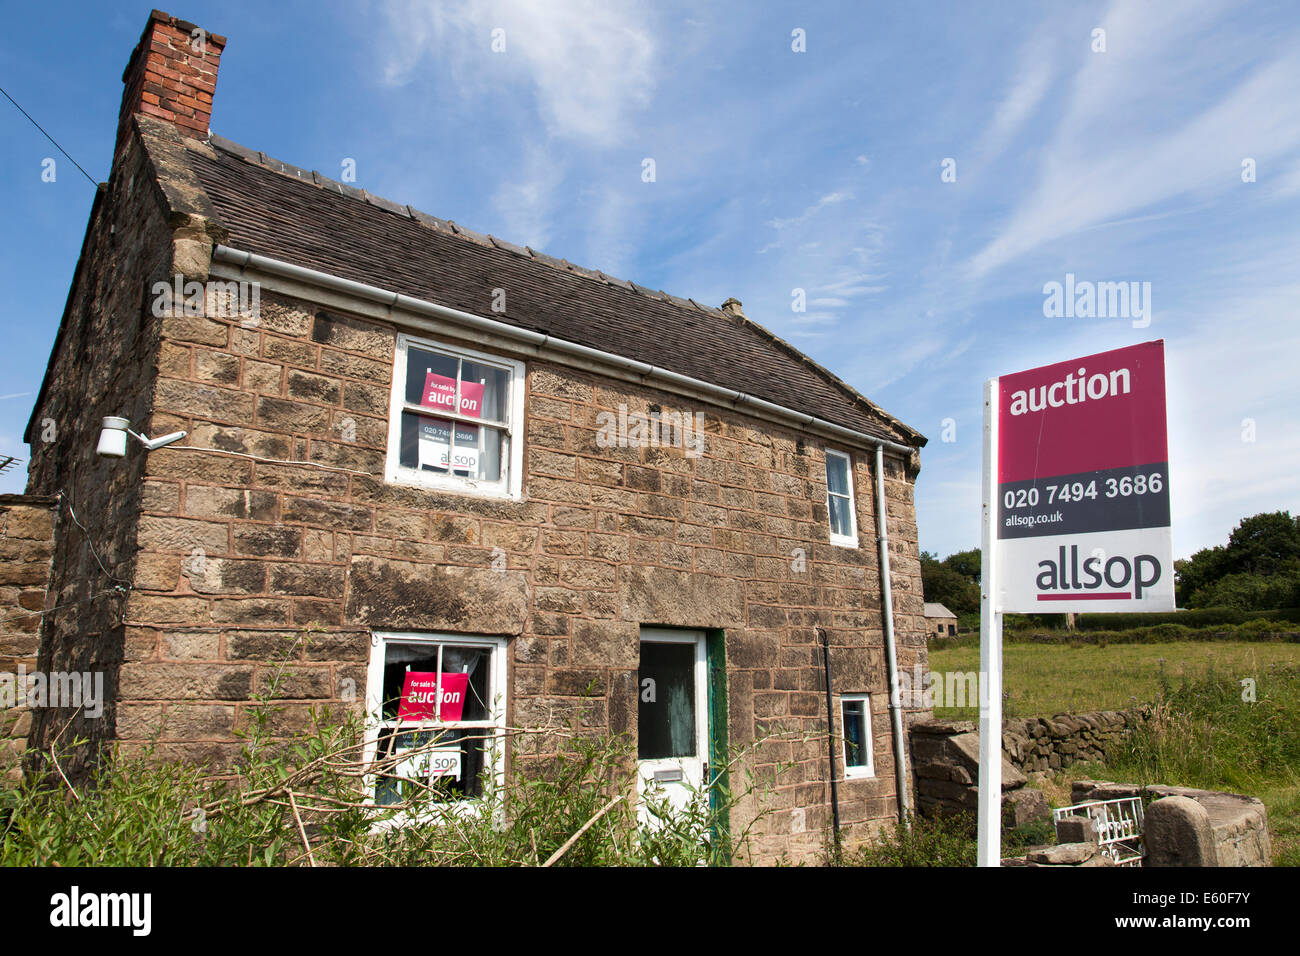 A cottage for sale by auction in Derbyshire, England, U.K. - Stock Image